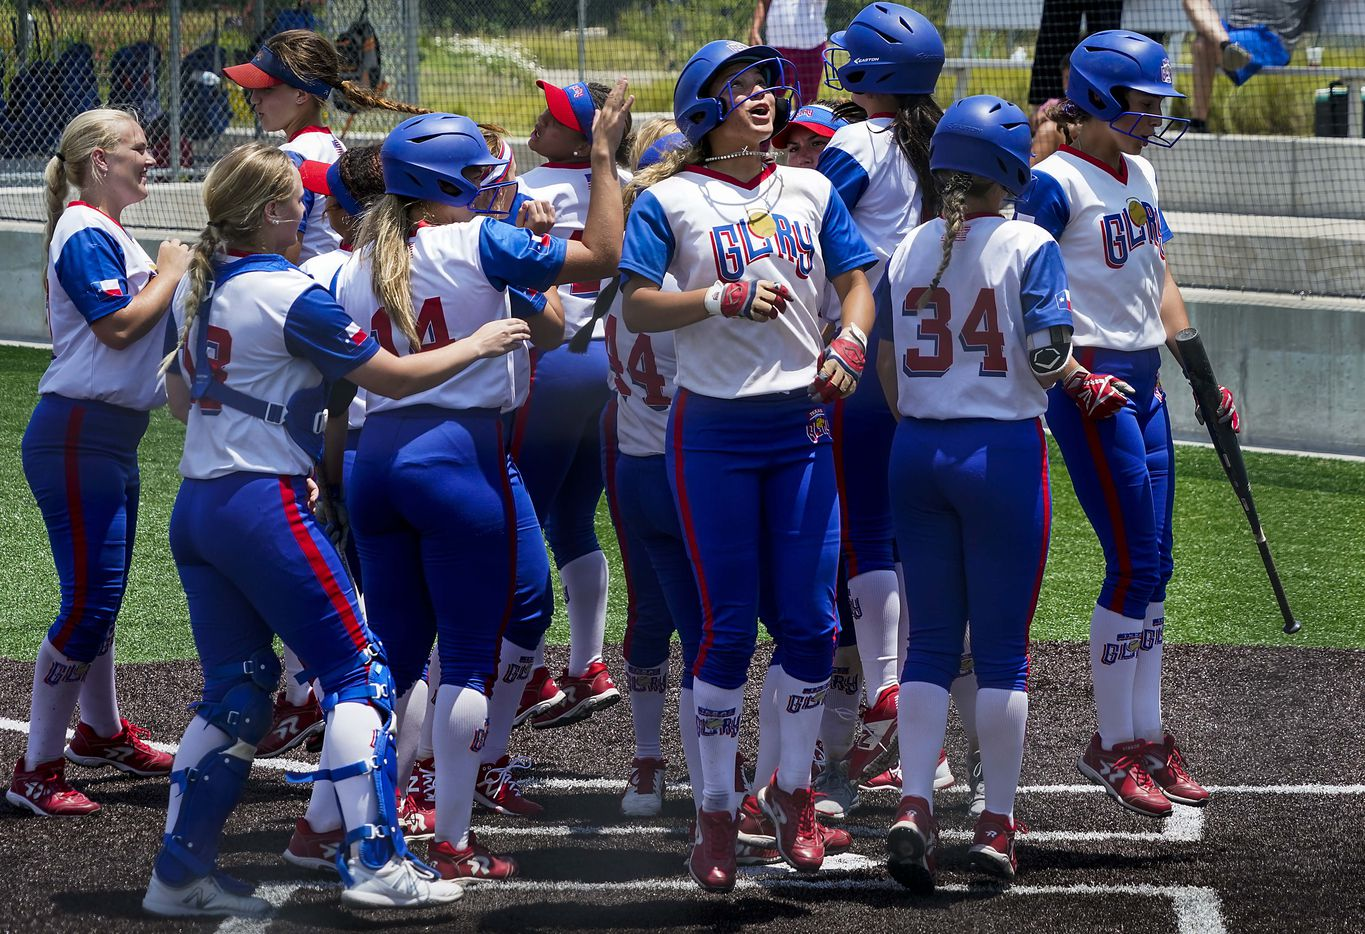 Texas Glory 18U players, including shortstop Jayda Coleman (facing at center) celebrate after third baseman Trinity Cannon (44) hit a home run against the American Freedom Gold Coleman 18U during a Triple Crown Texas State Tournament game at Spirit Park on Monday, June 15, 2020, in Allen, Texas. (Smiley N. Pool/The Dallas Morning News)